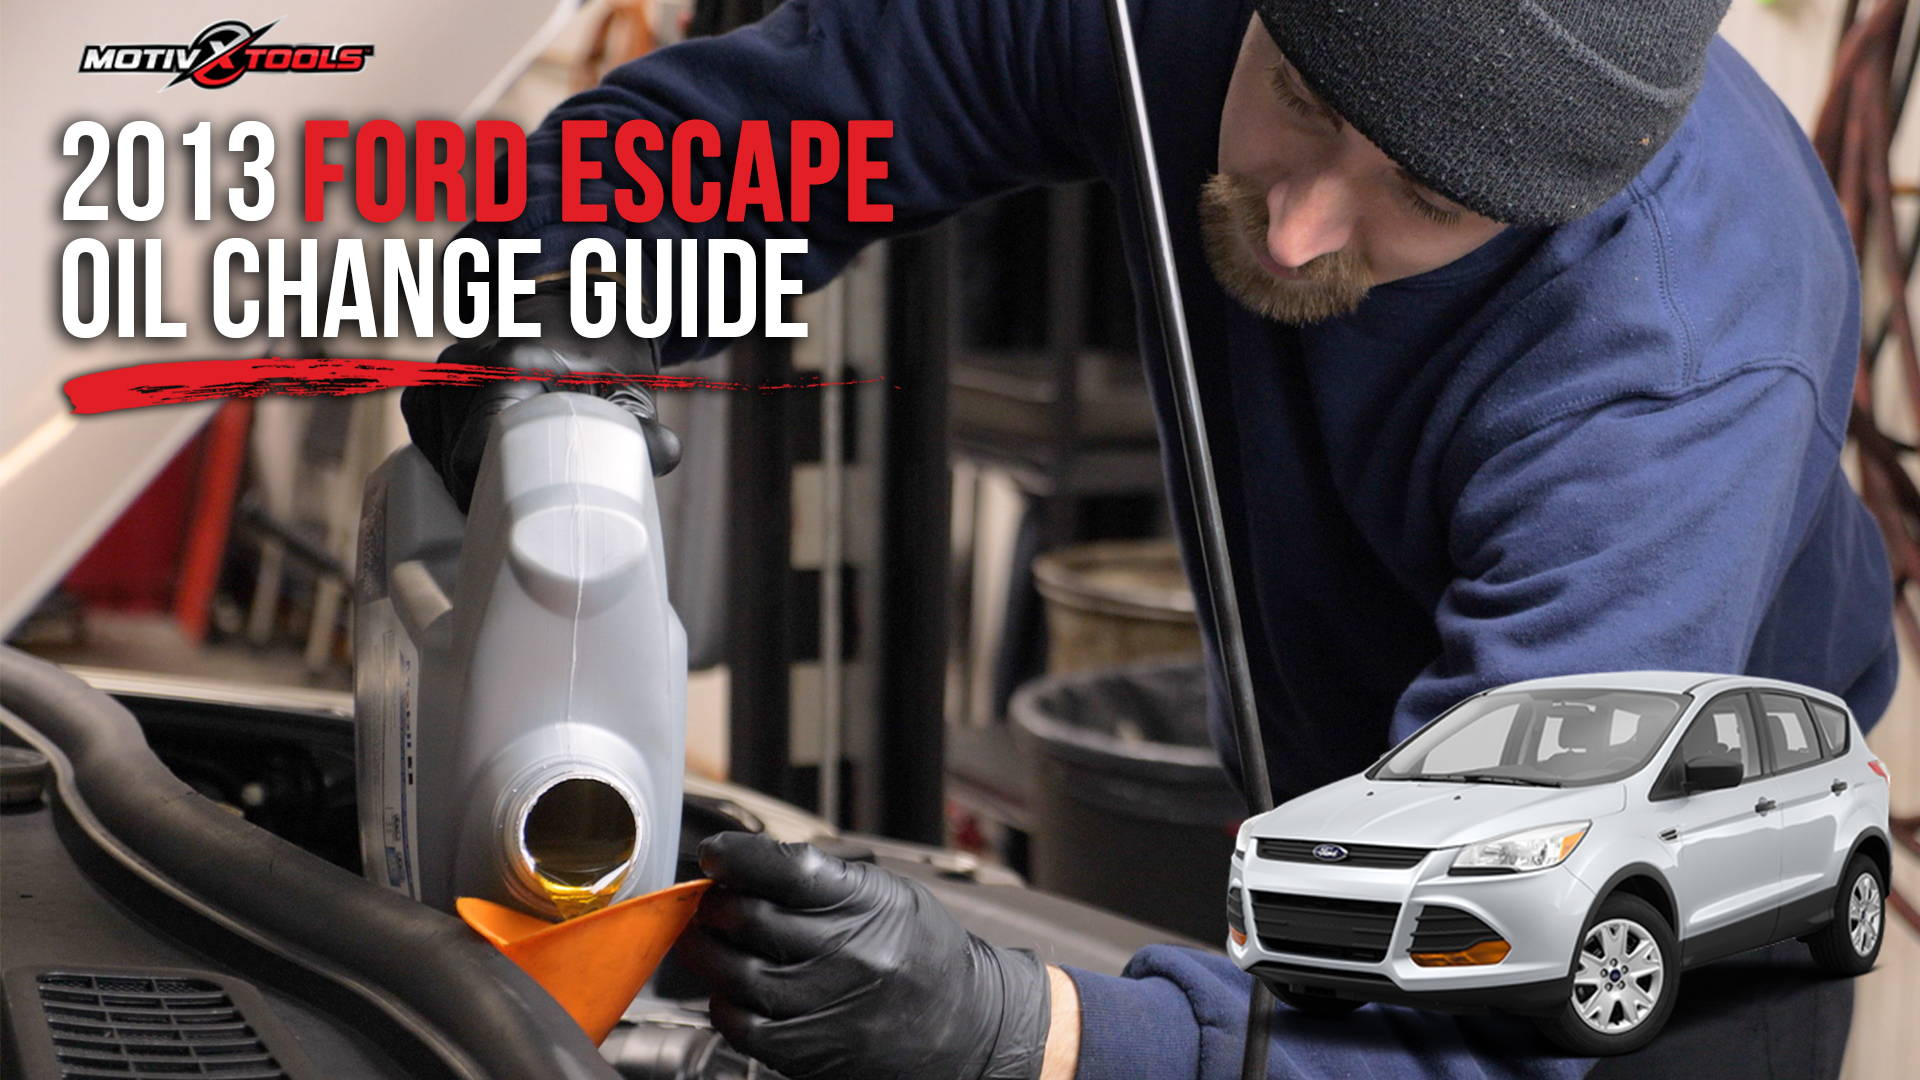 2013 Ford Escape Oil Change Guide